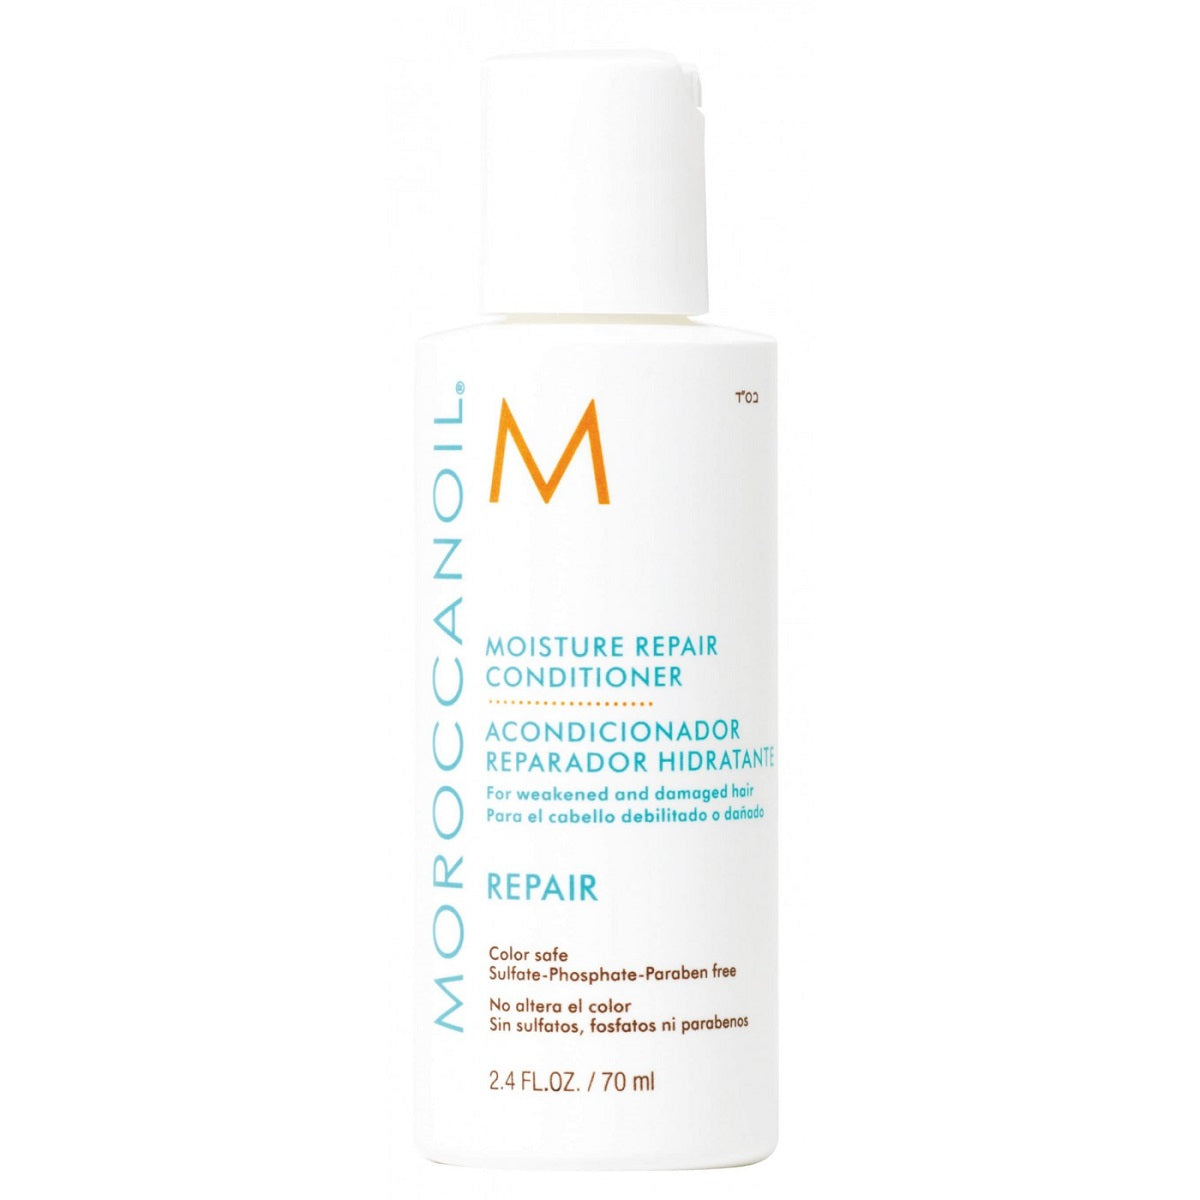 Moroccanoil Moisture Repair Conditioner 70mls Travel Size